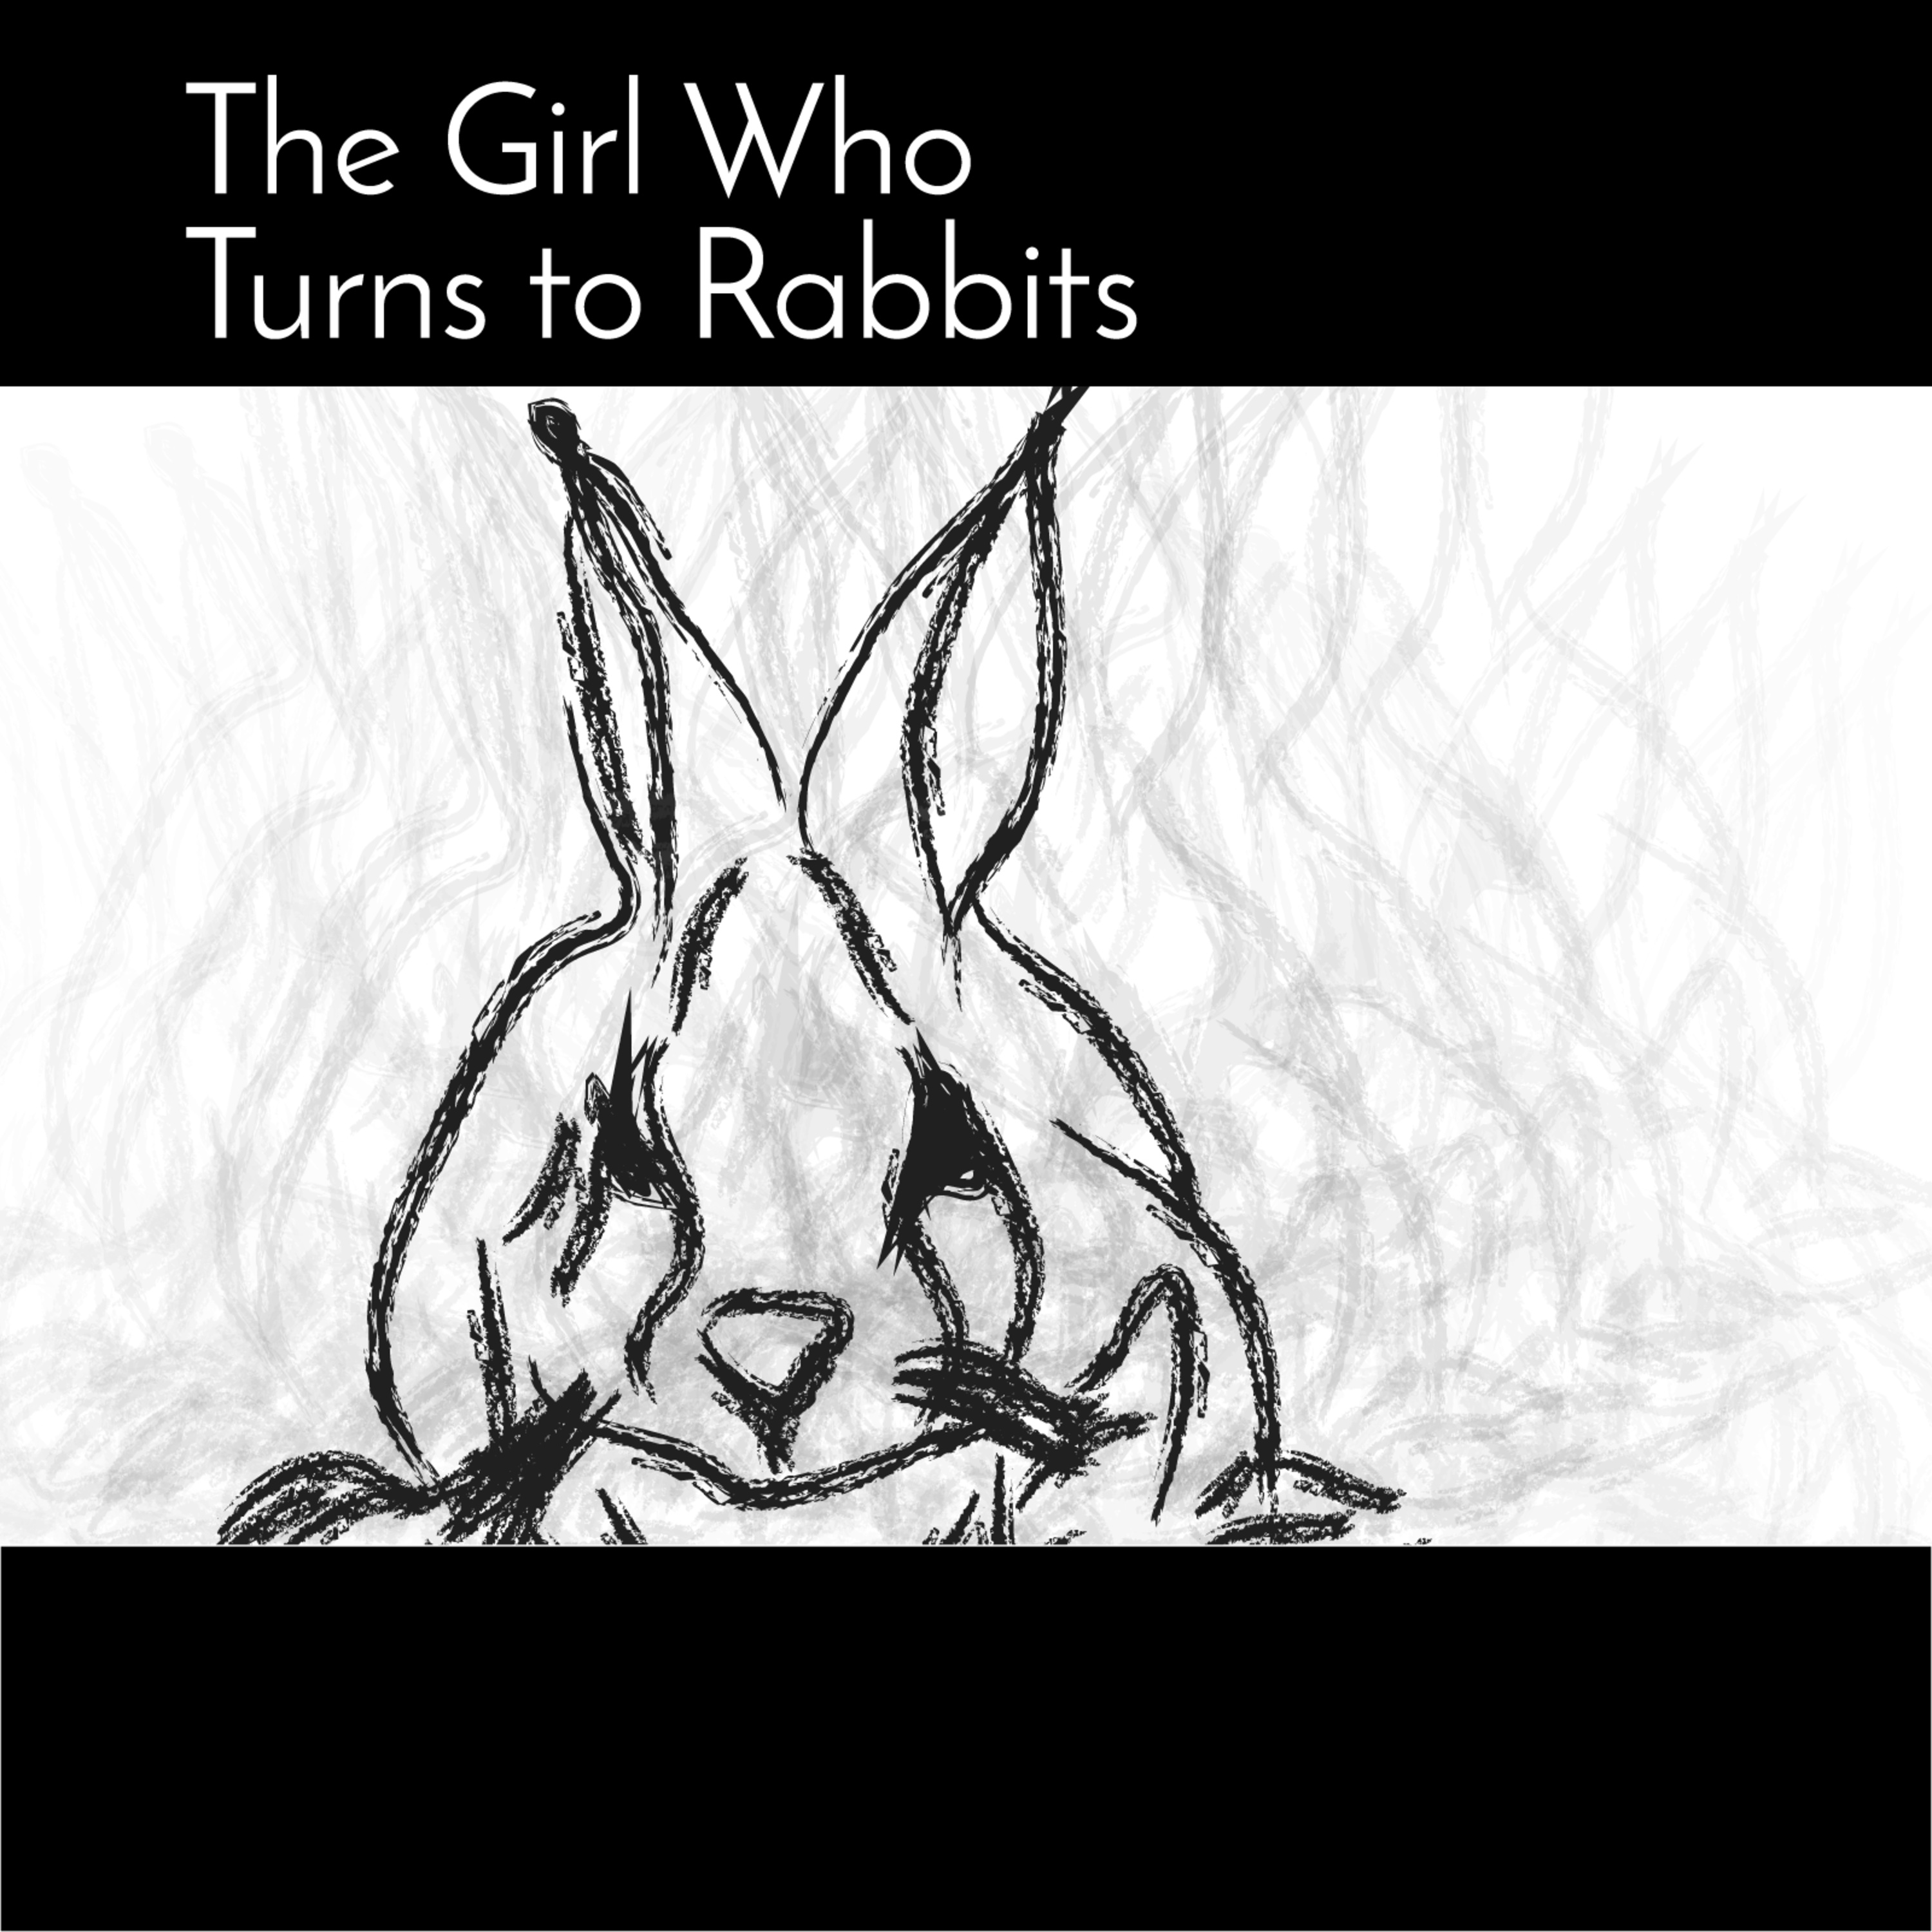 The Girl Who Turns to Rabbits